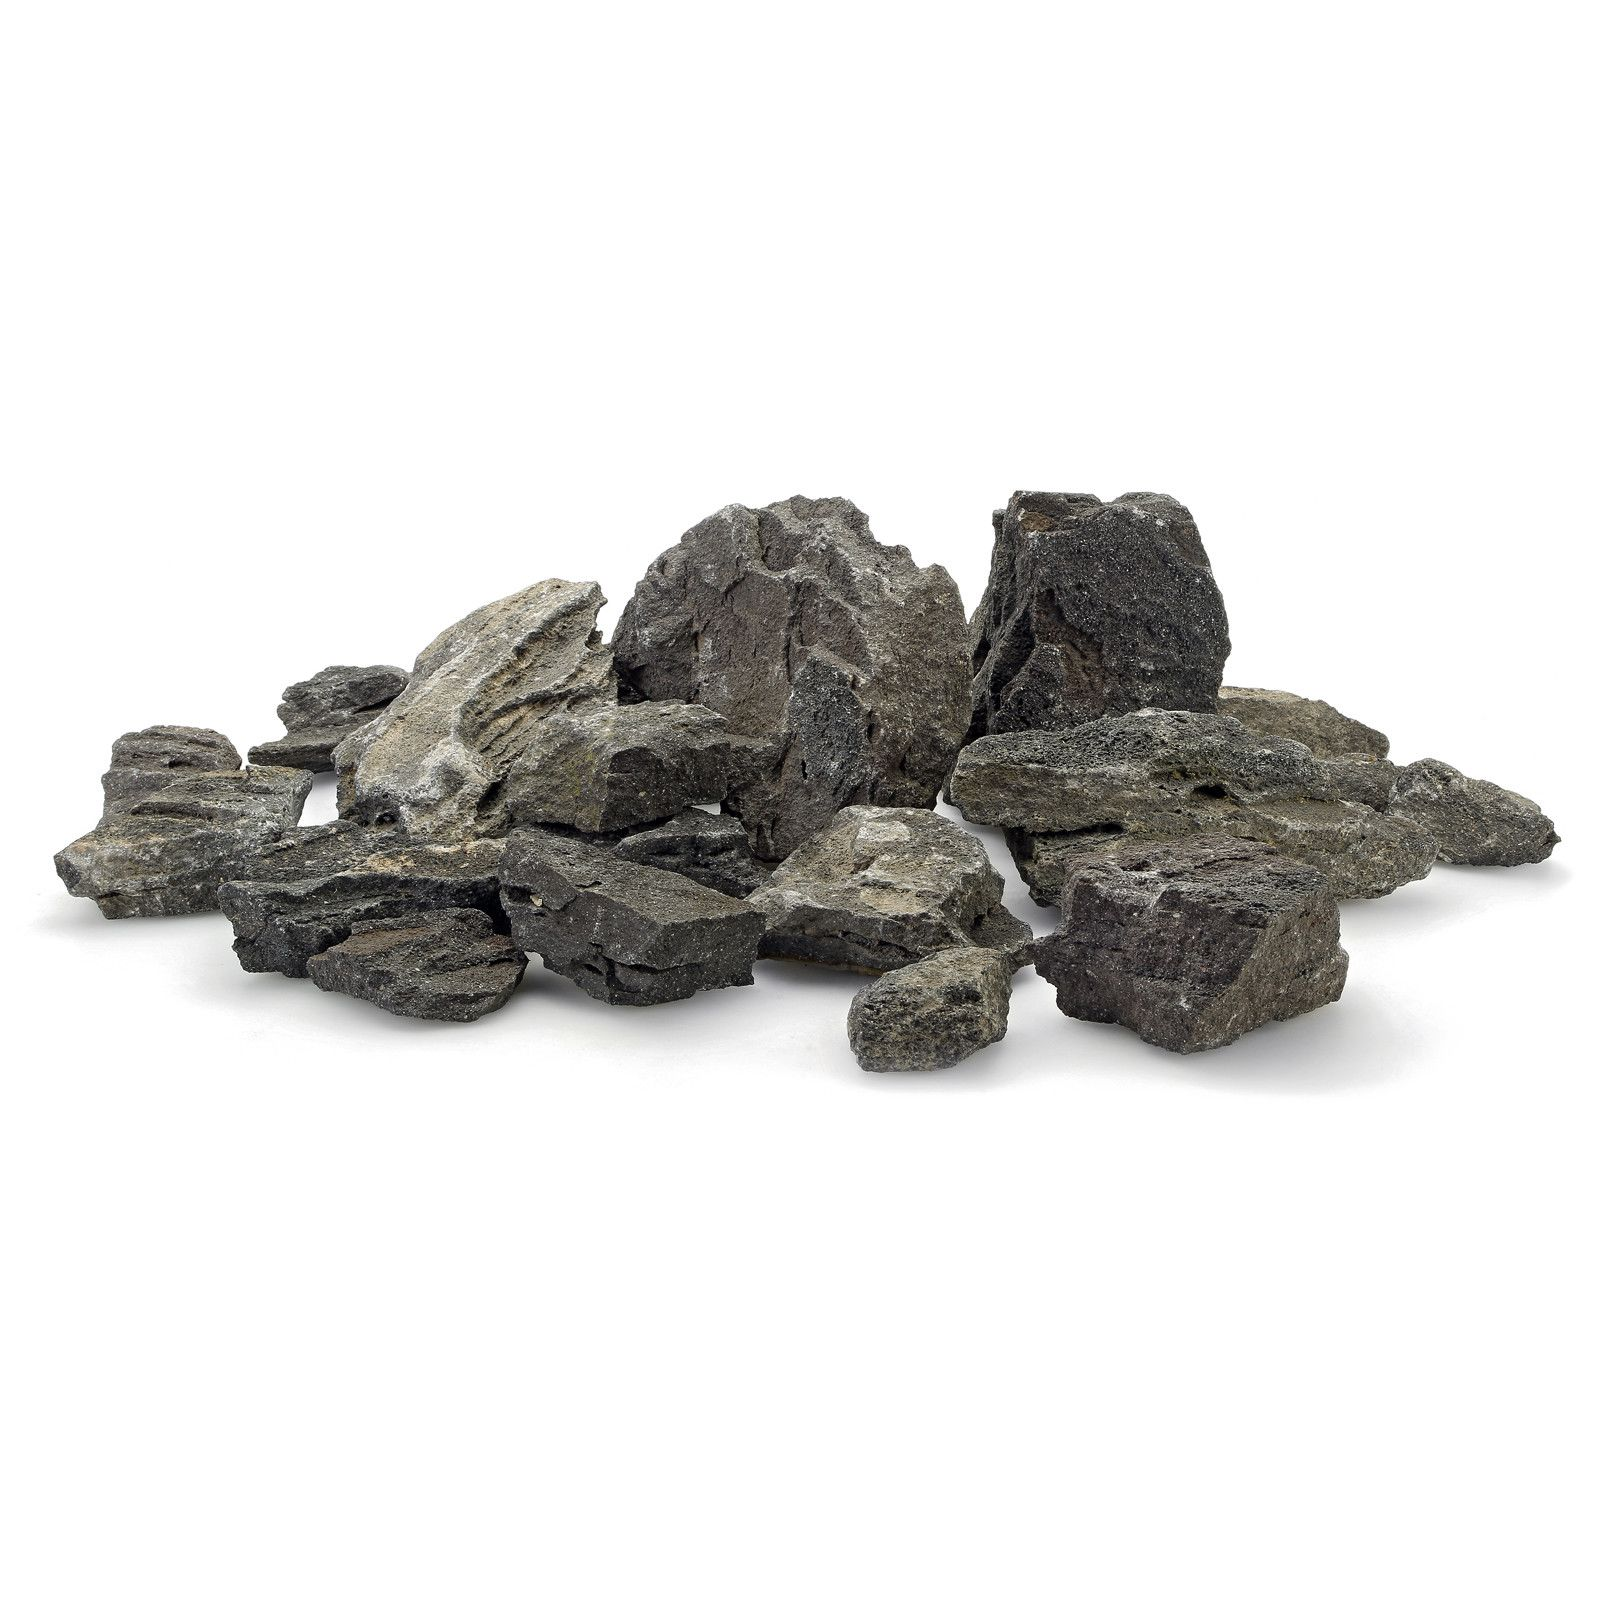 ada sansui stones main stones 15 kg aquasabi aquascaping shop. Black Bedroom Furniture Sets. Home Design Ideas